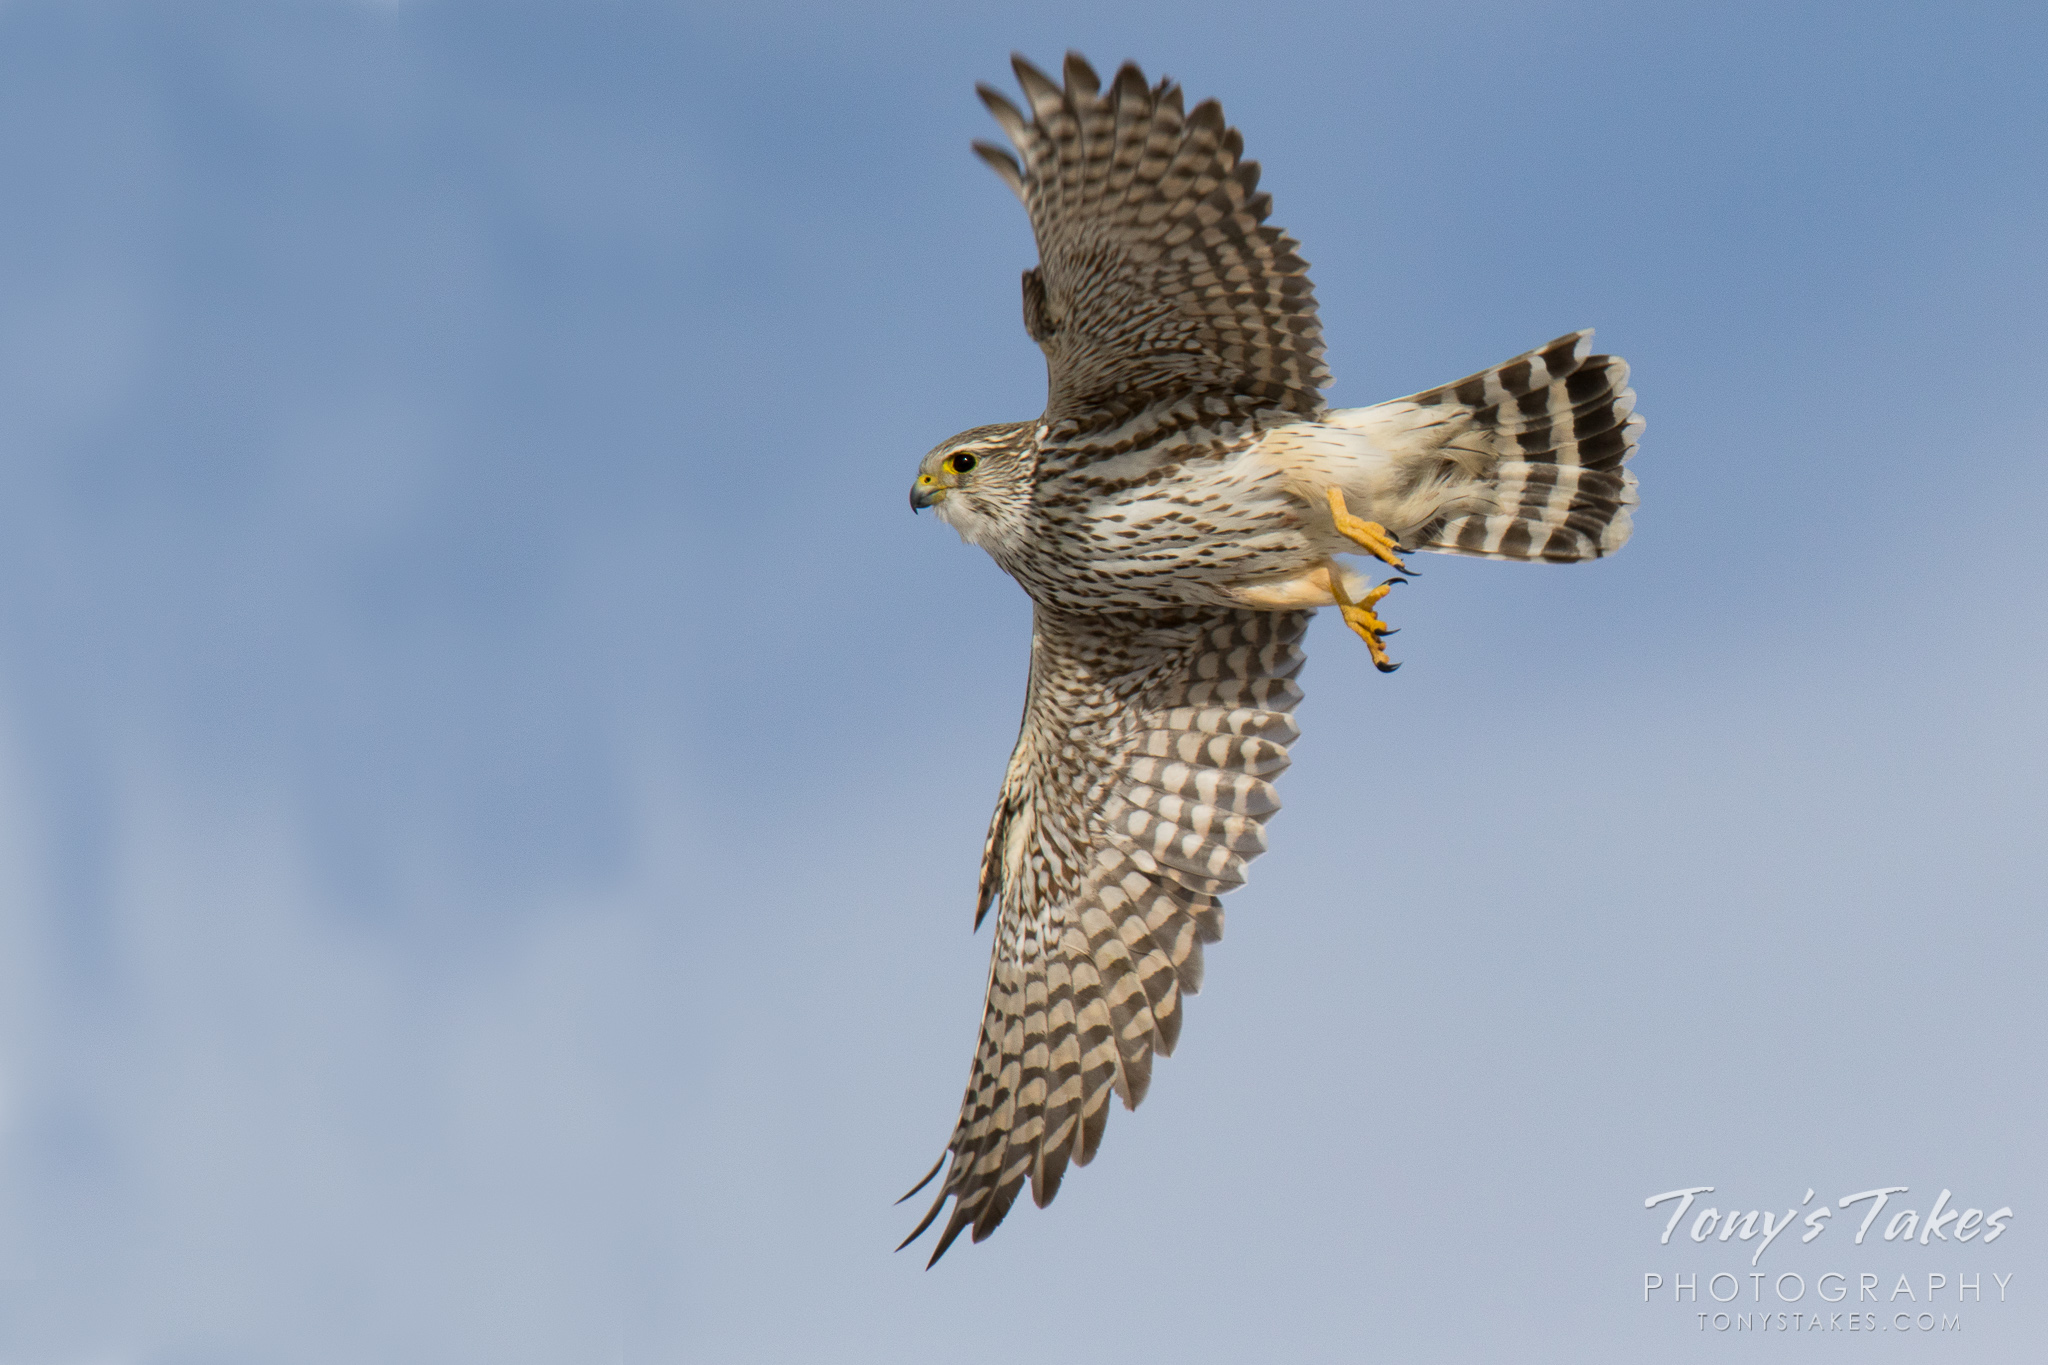 Merlin takes a magical flight